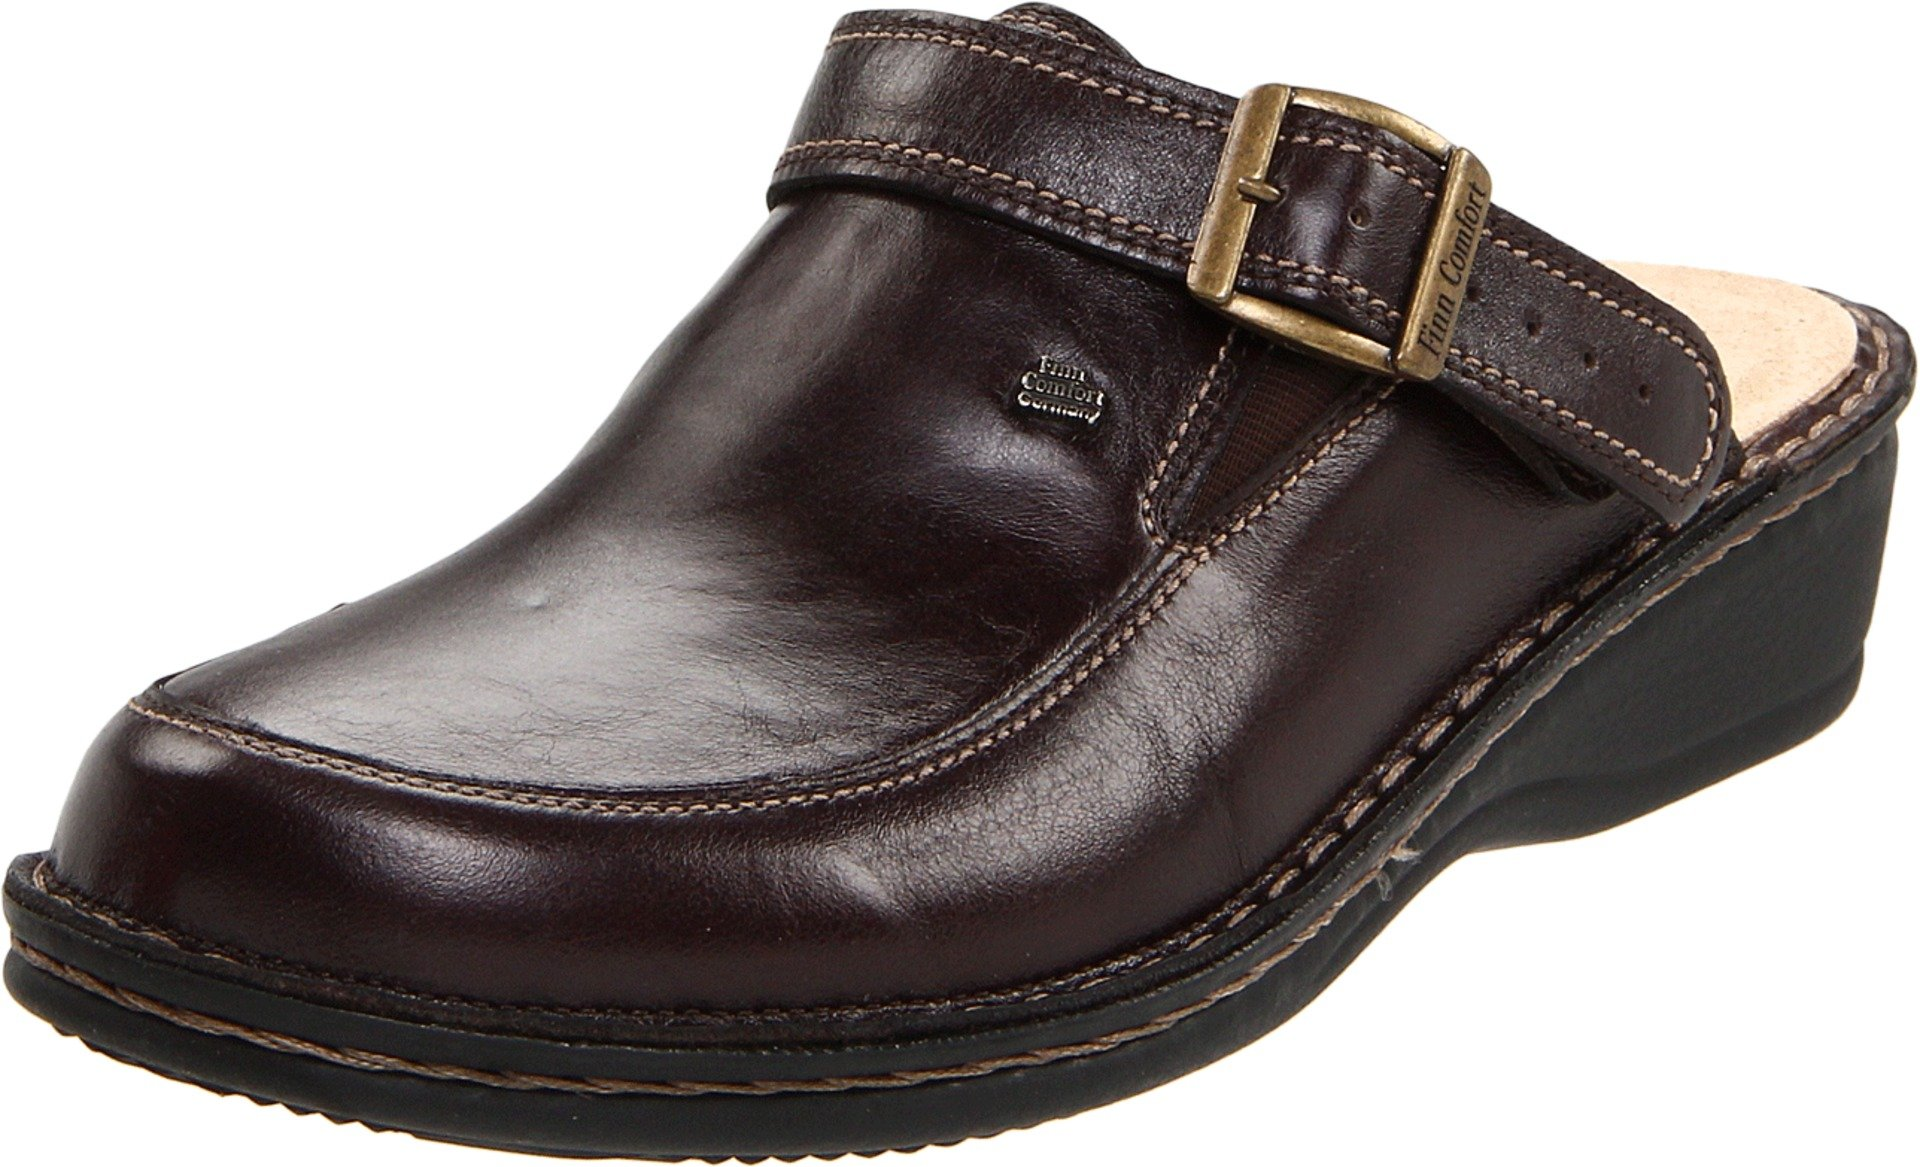 Finn Comfort Women's Kasos - 2539,Kaffee,37 (Women's 6-6.5 US)